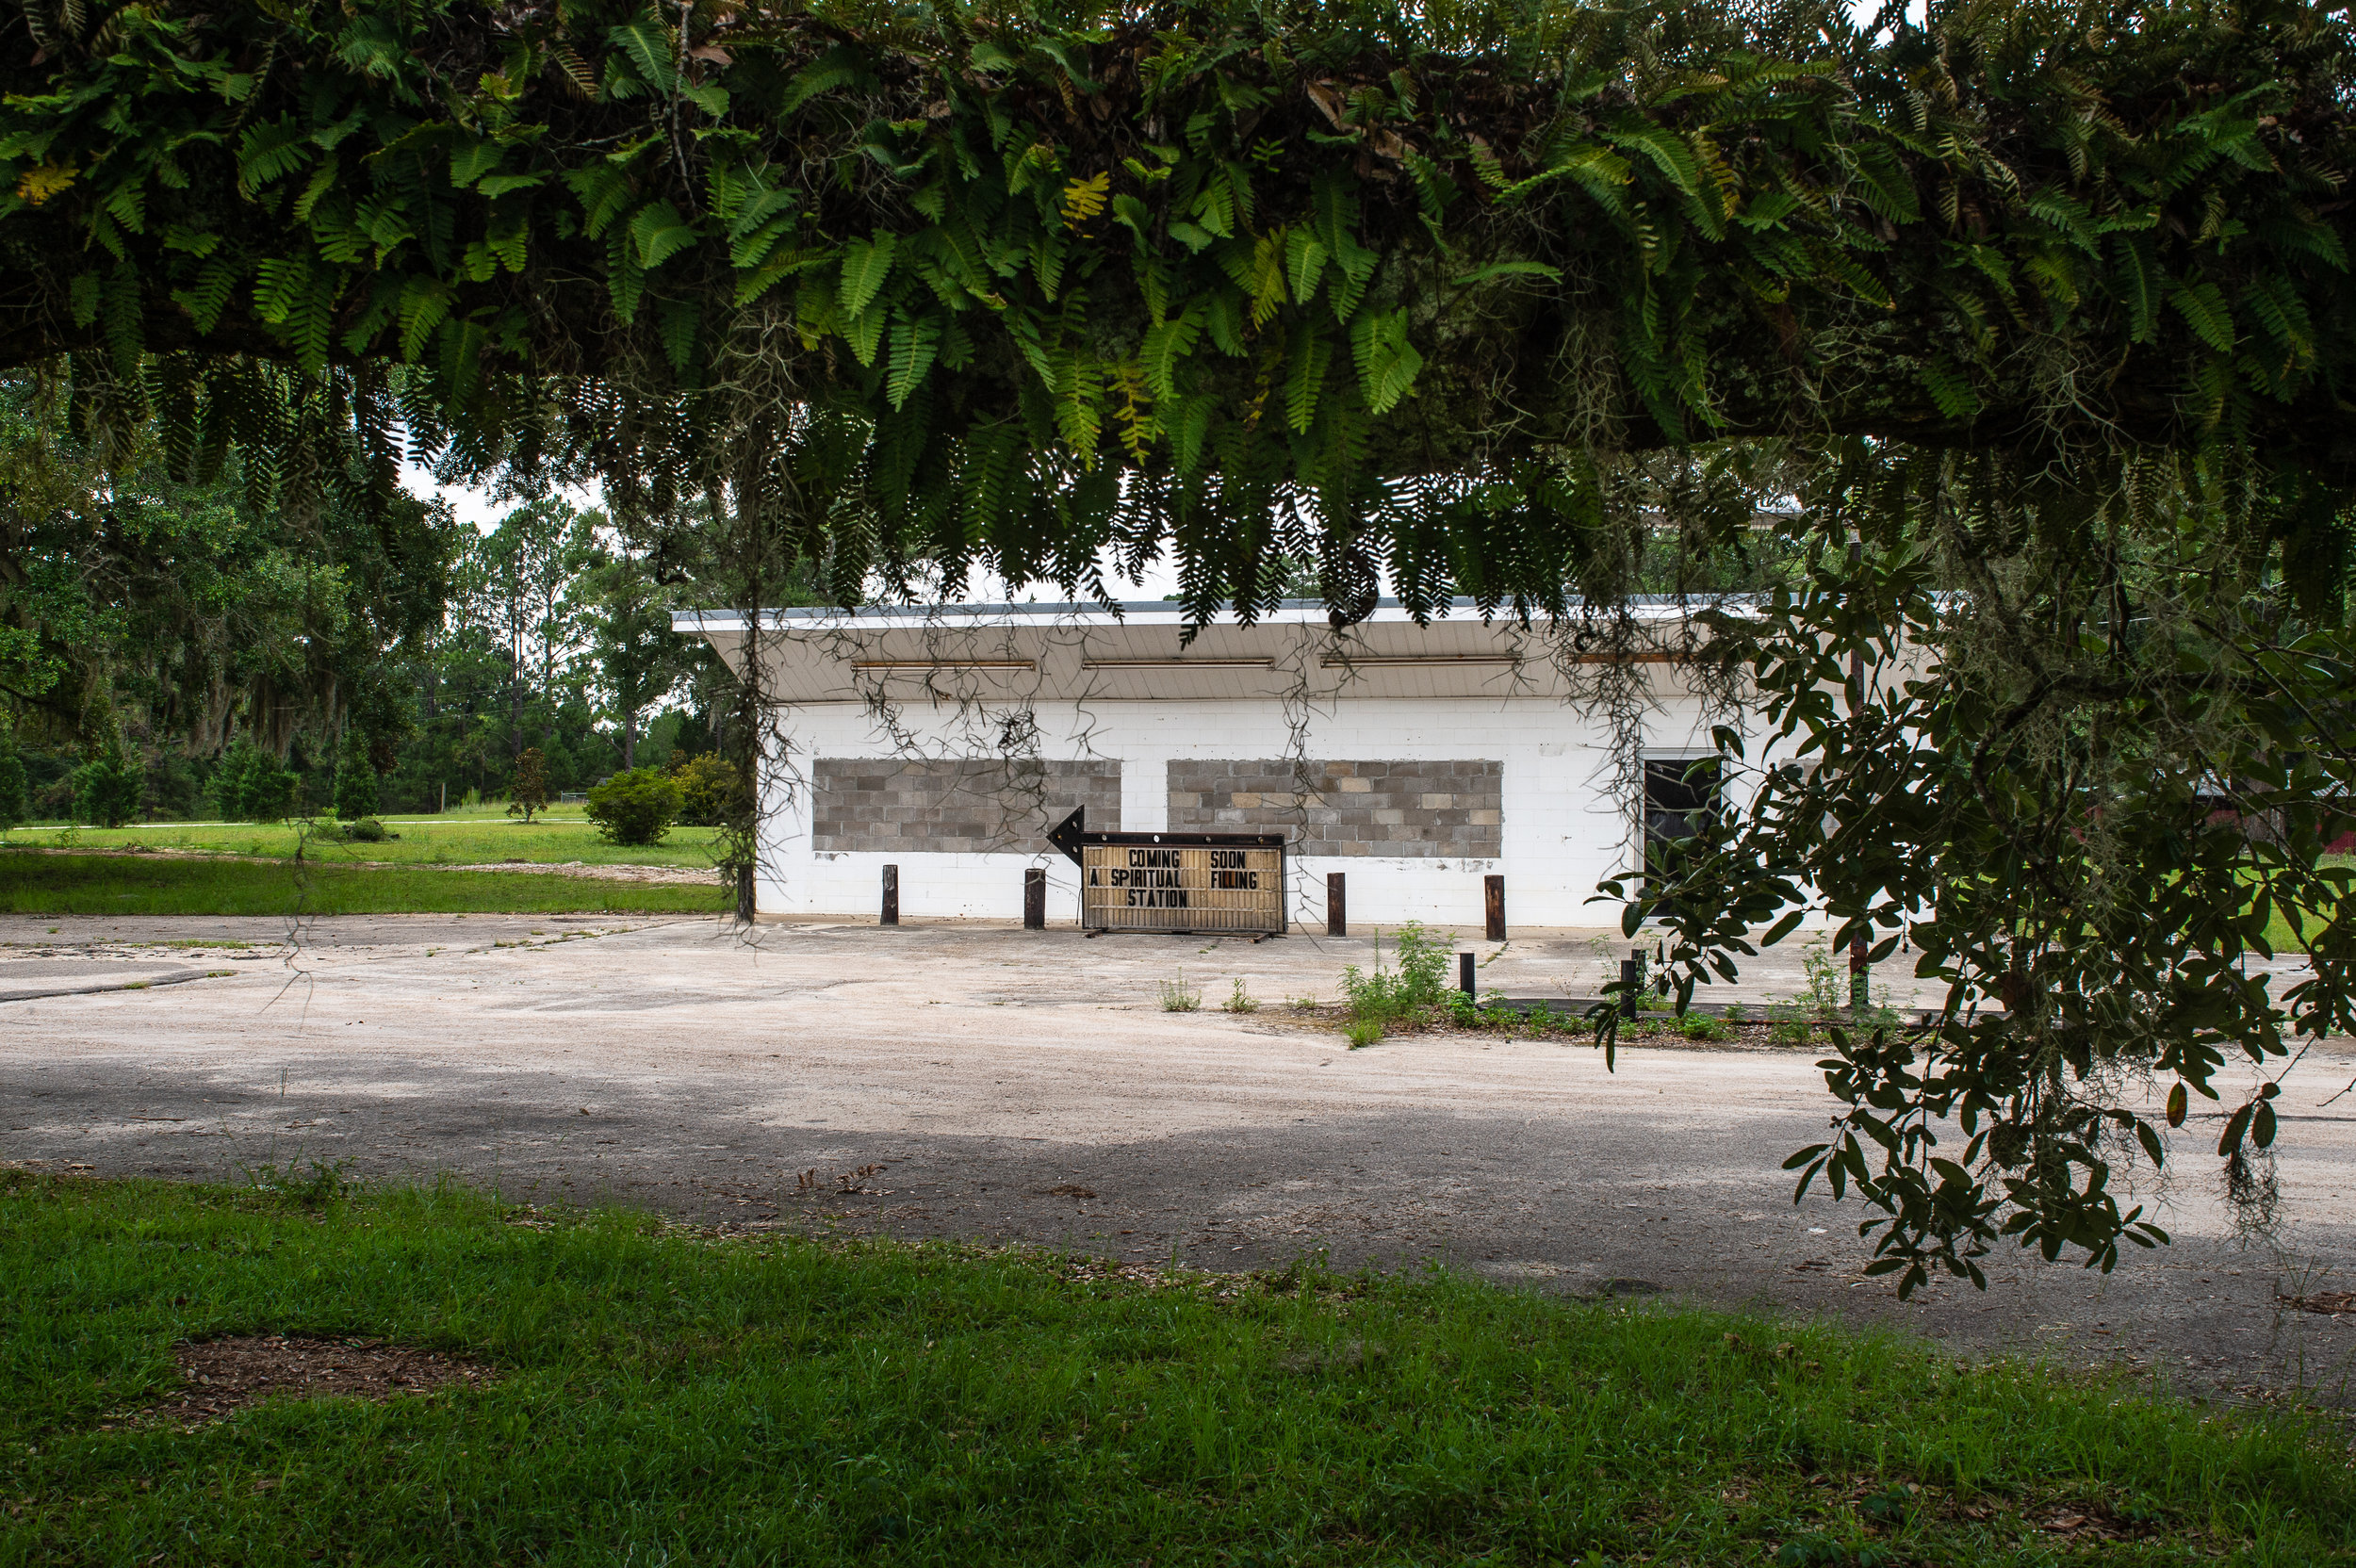 chipley spiritual filling station (1 of 1).jpg